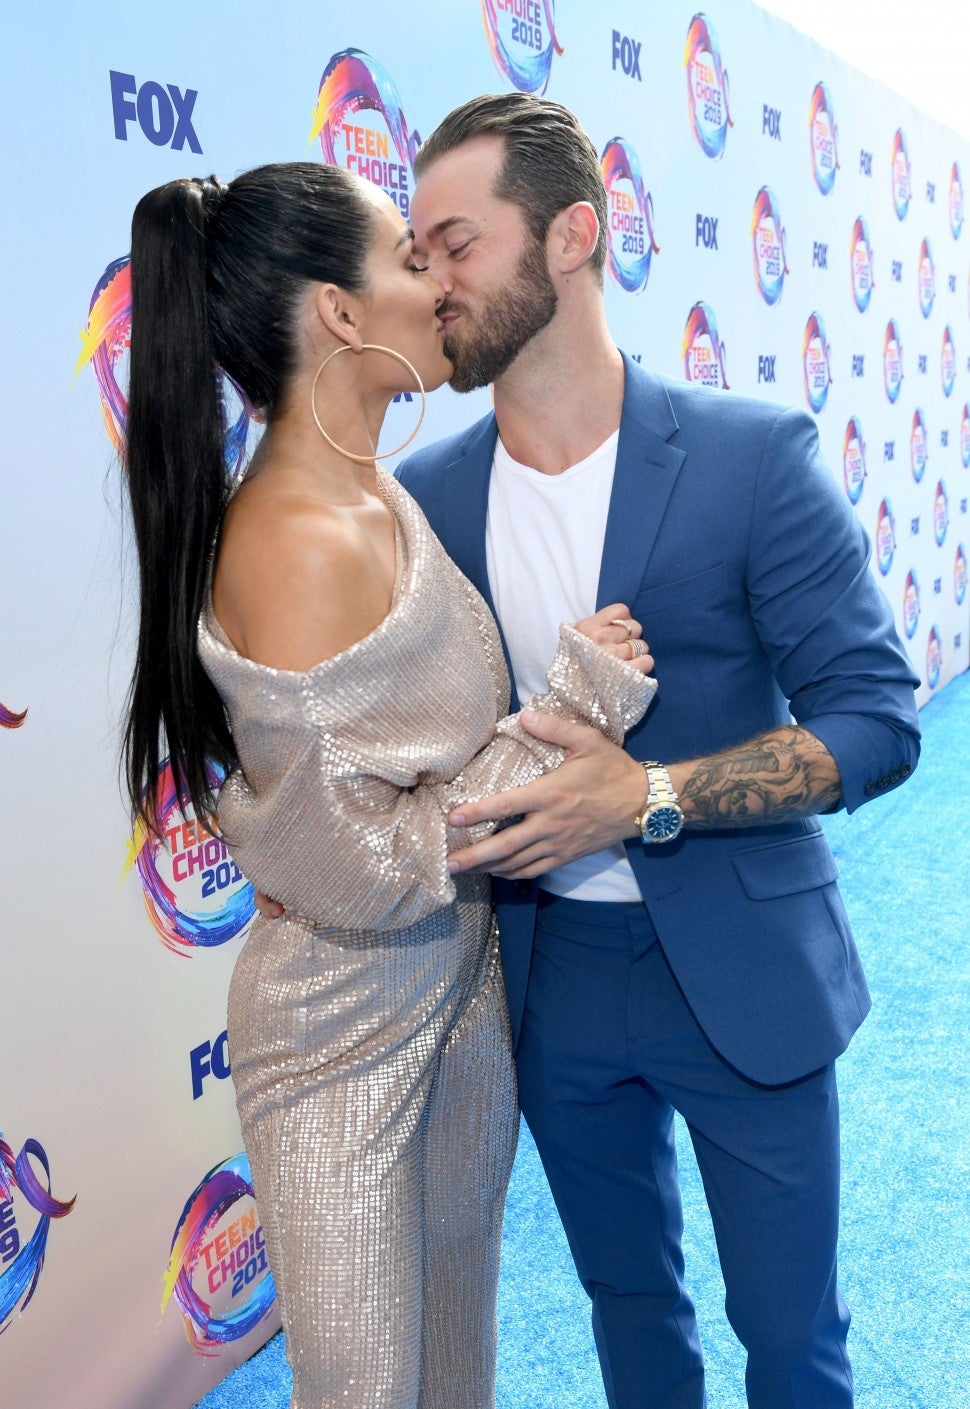 Nikki Bella and Artem Chigvintsev Kiss at the 2019 Teen Choice Awards